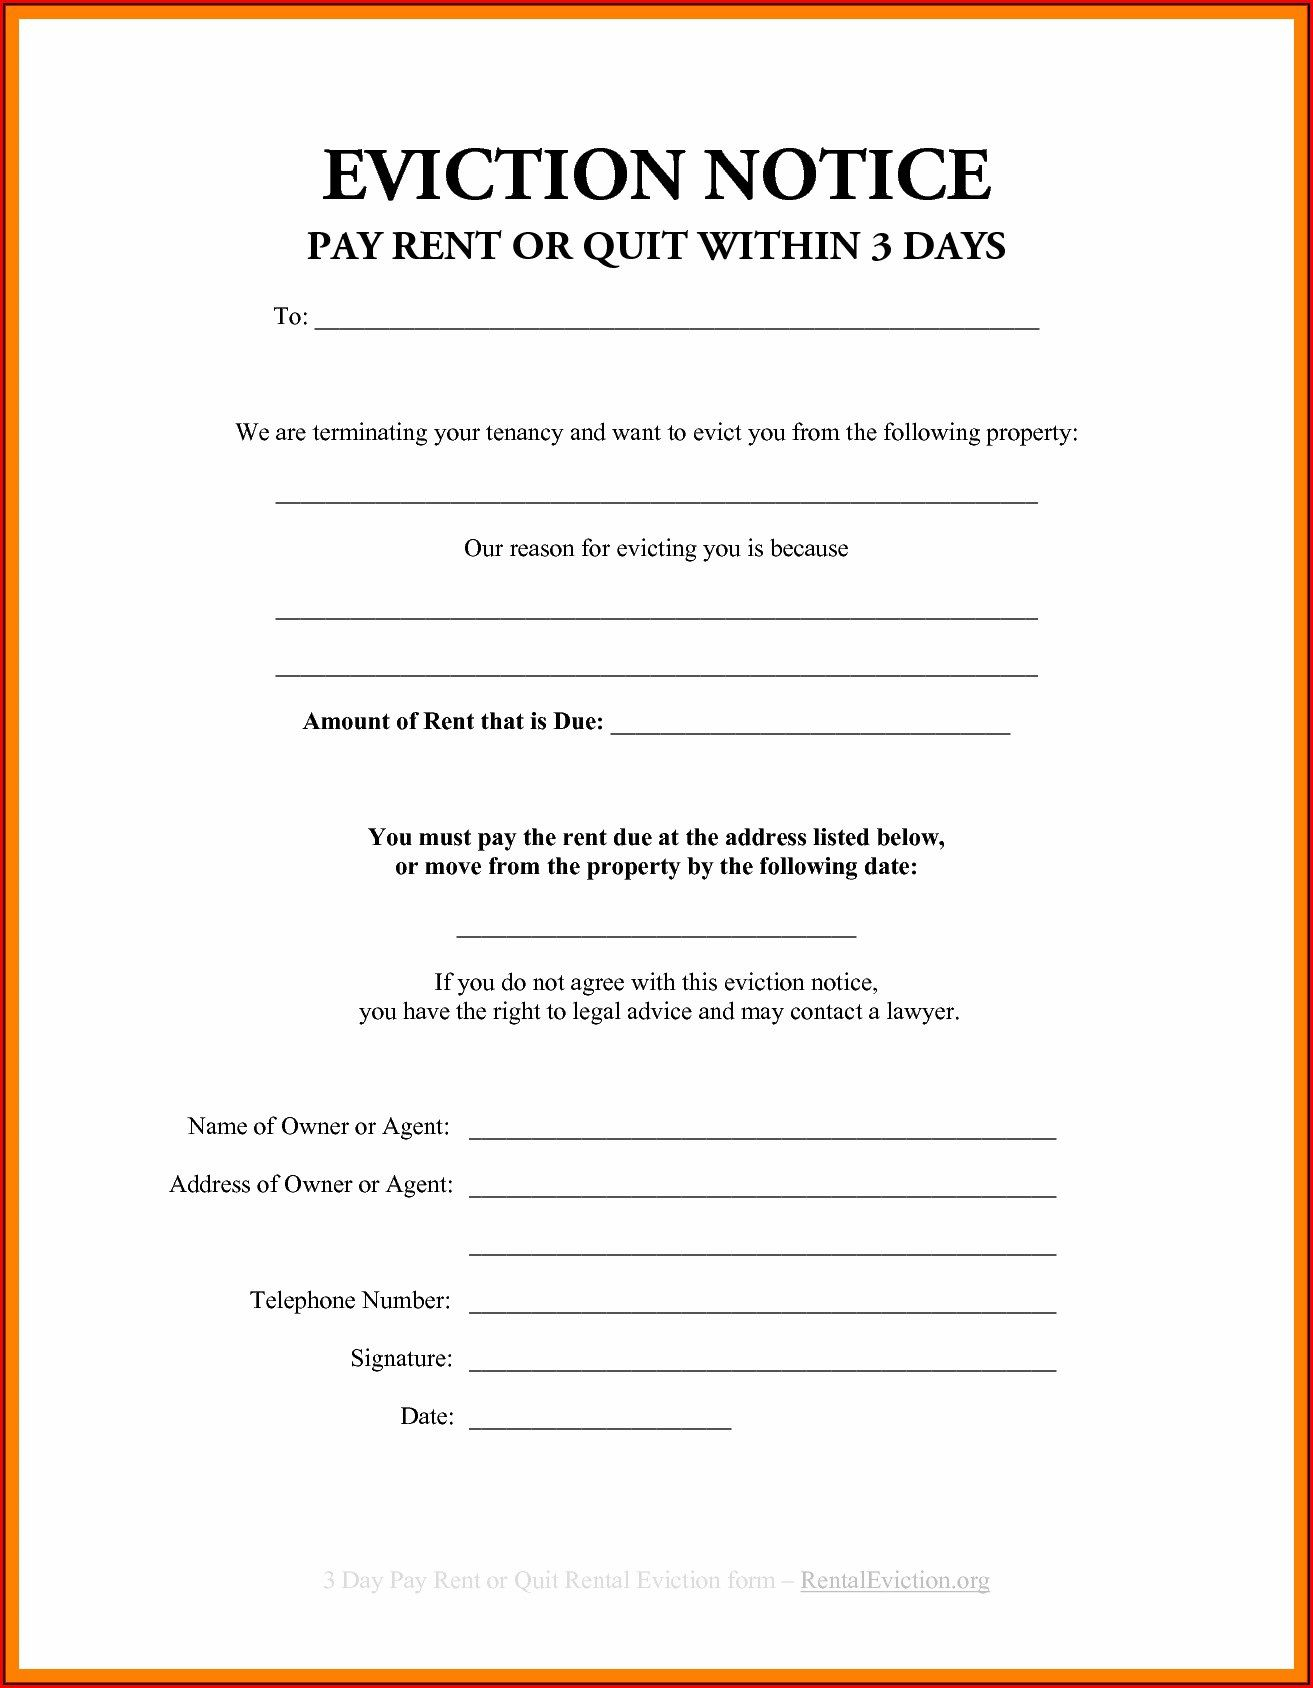 001 Stupendou Eviction Notice Template Free Design  30 Day Uk Word DocumentFull